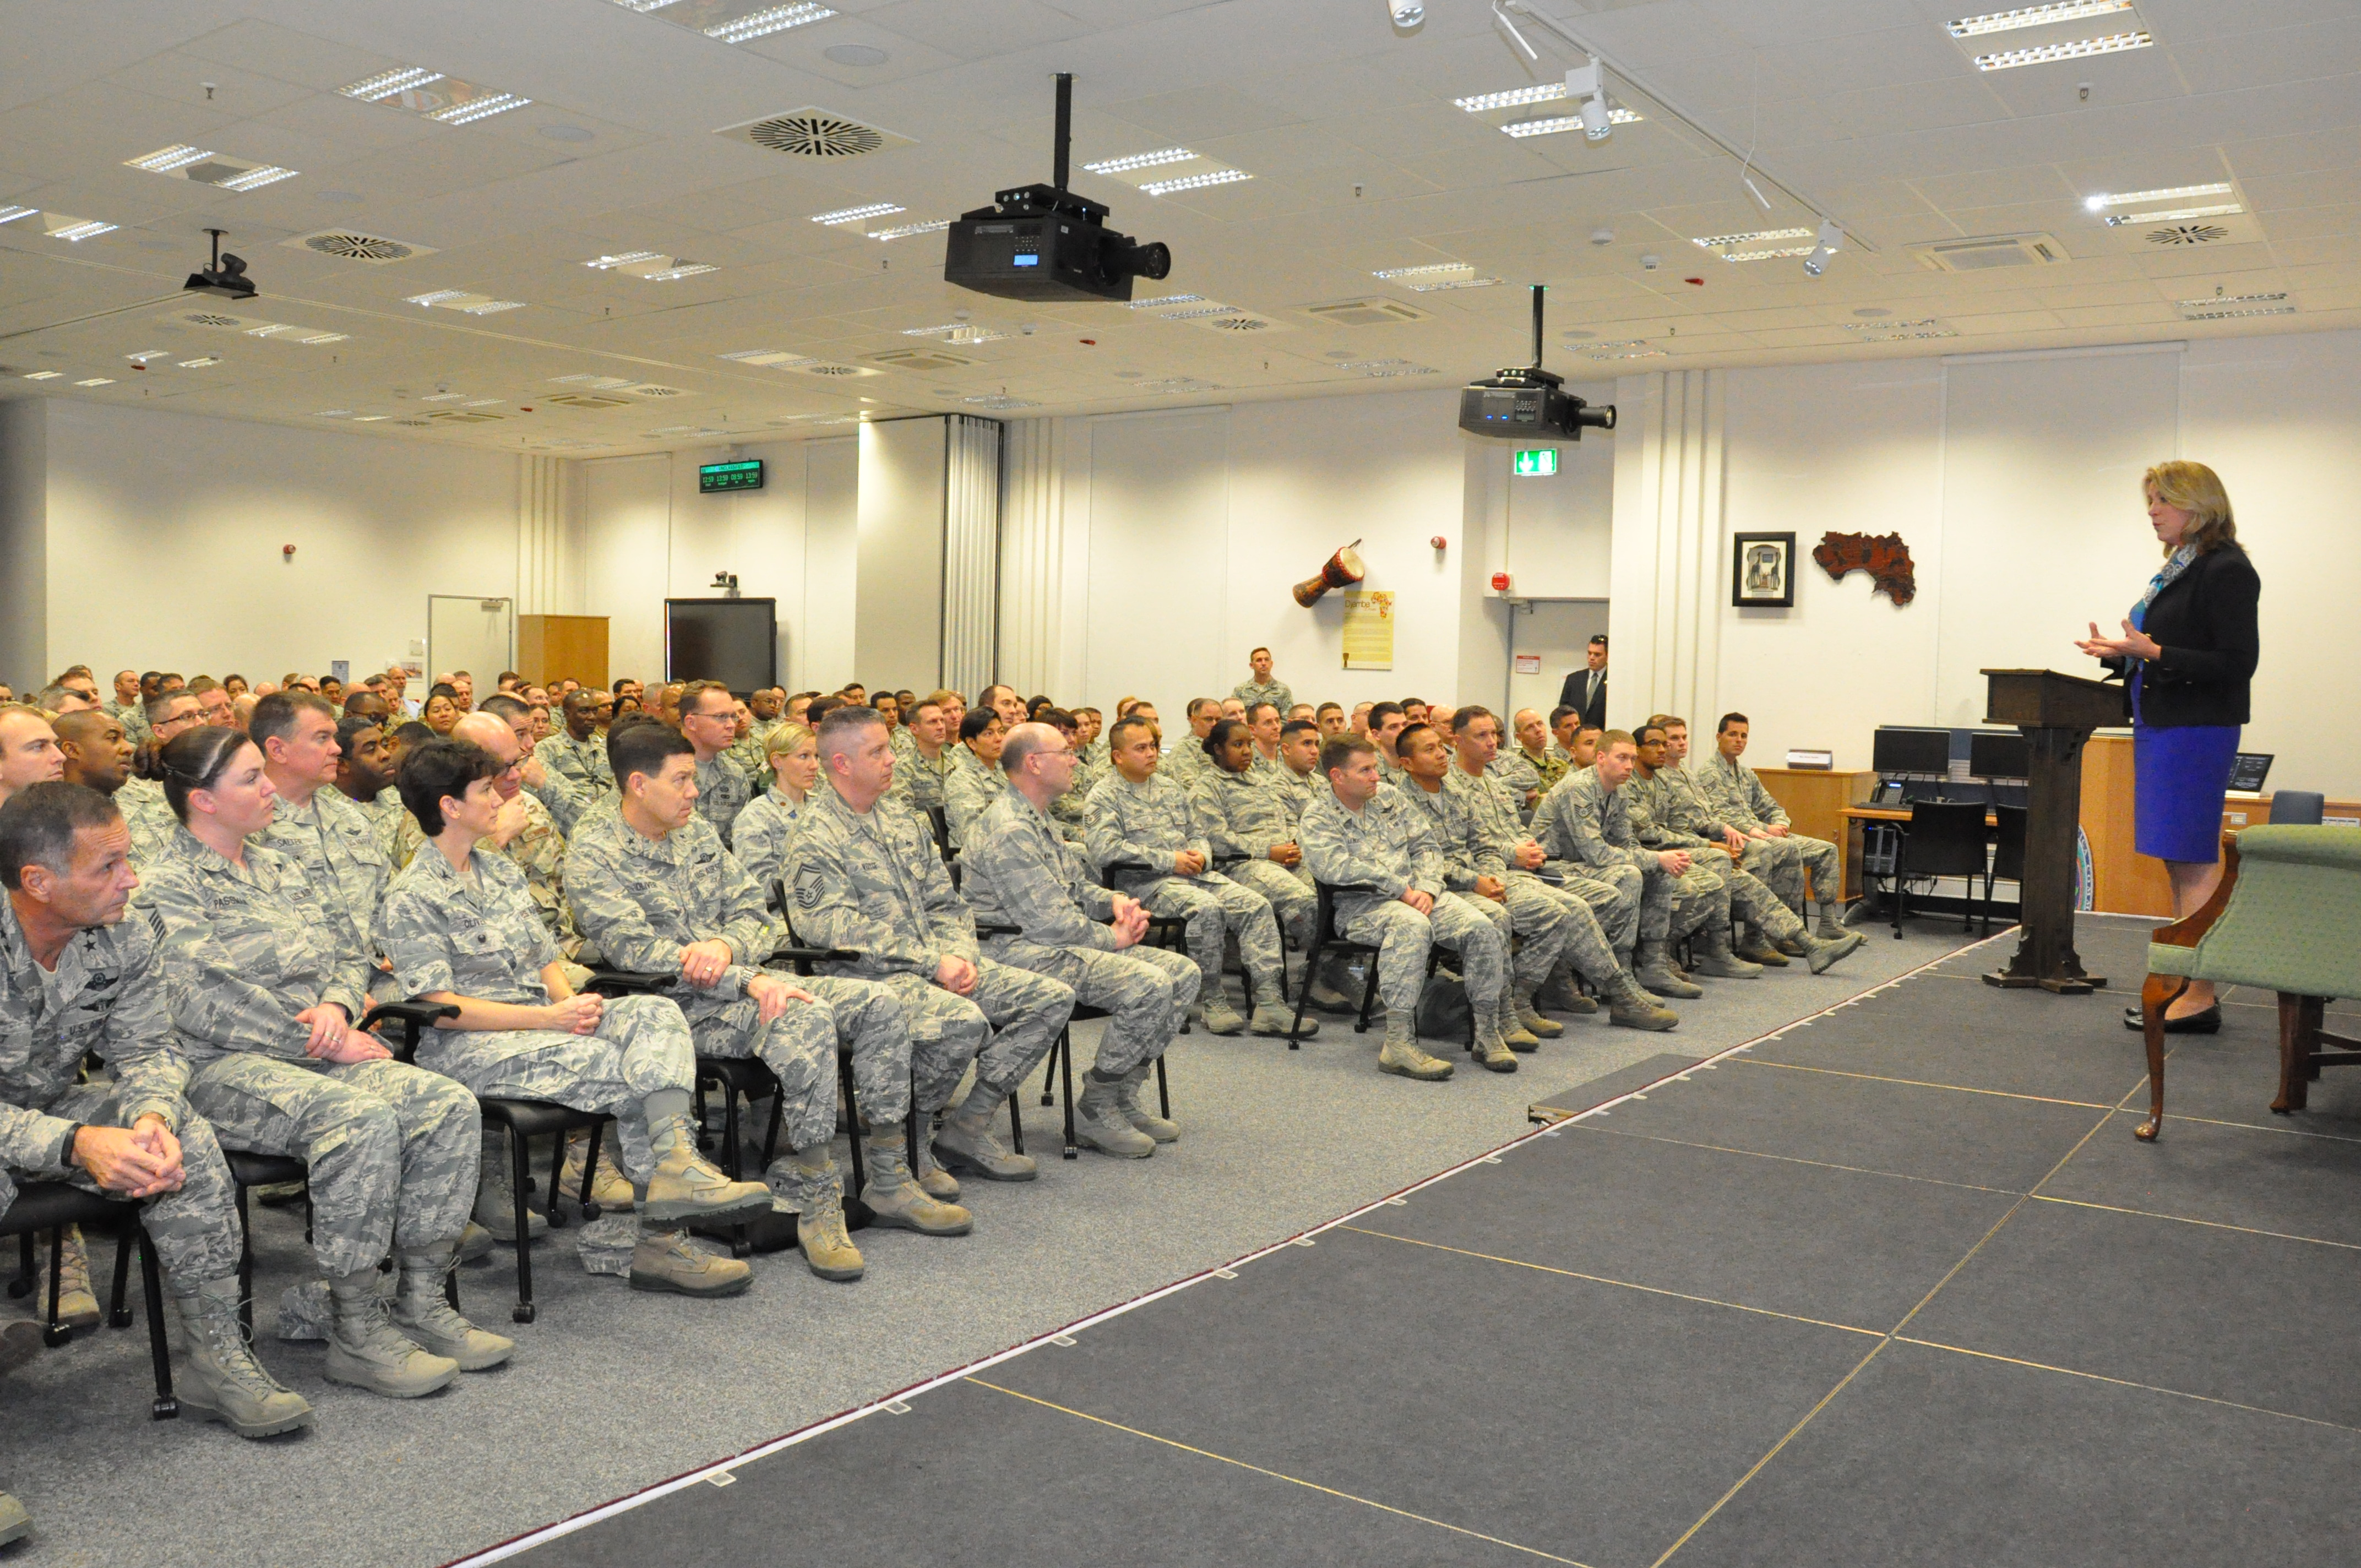 Secretary of the Air Force Deborah Lee James discusses her top priorities with more than 150 Airmen stationed in Stuttgart, Germany, during an Airmen's Call, Nov. 18, 2015. (U.S. Africa Command photo by Brenda Law/RELEASED)